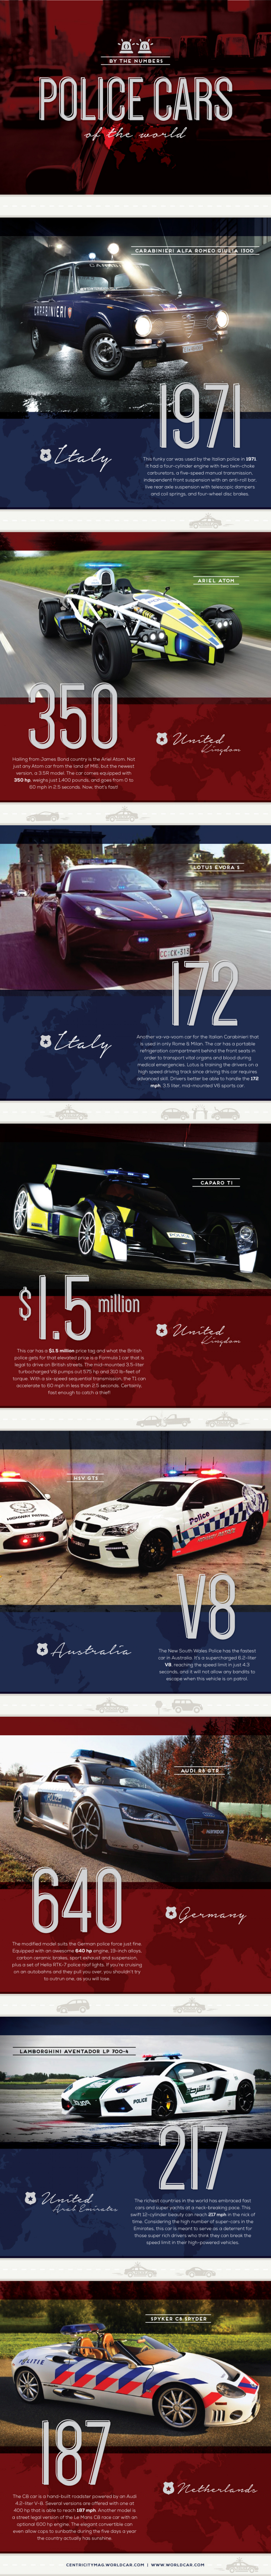 By The Numbers: Police Cars of the World Infographic